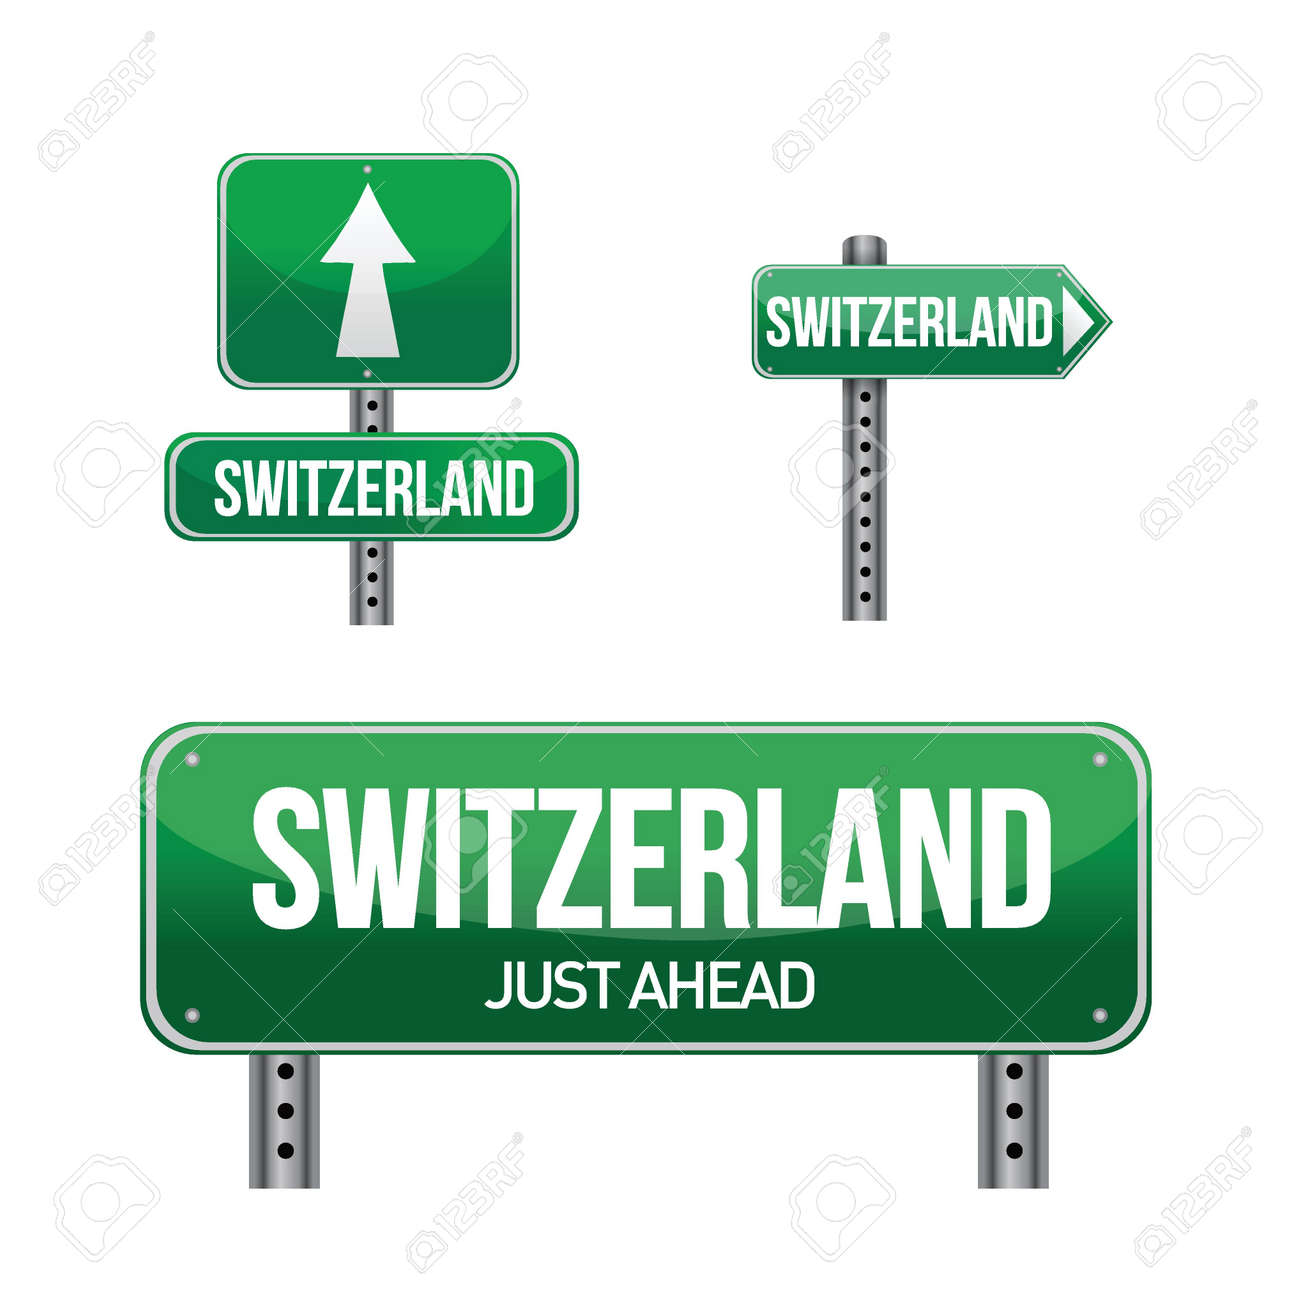 switzerland Country road sign illustration design over white Stock Vector - 18161771